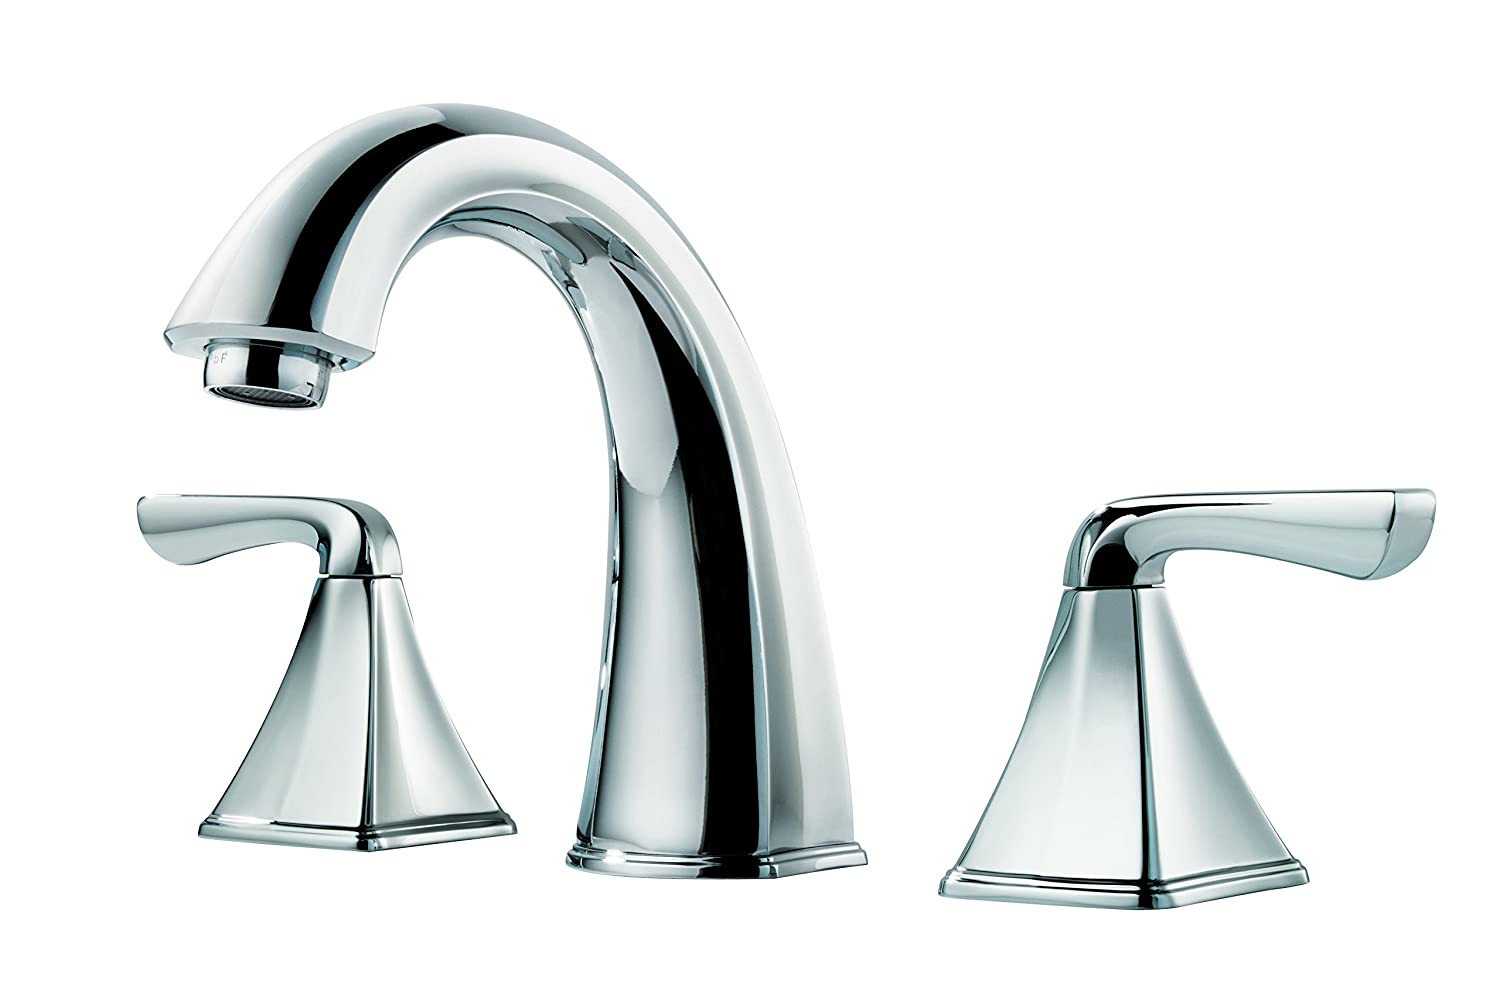 Price Pfister F049SLCC Selia Widespread Bathroom Sink Faucet ...